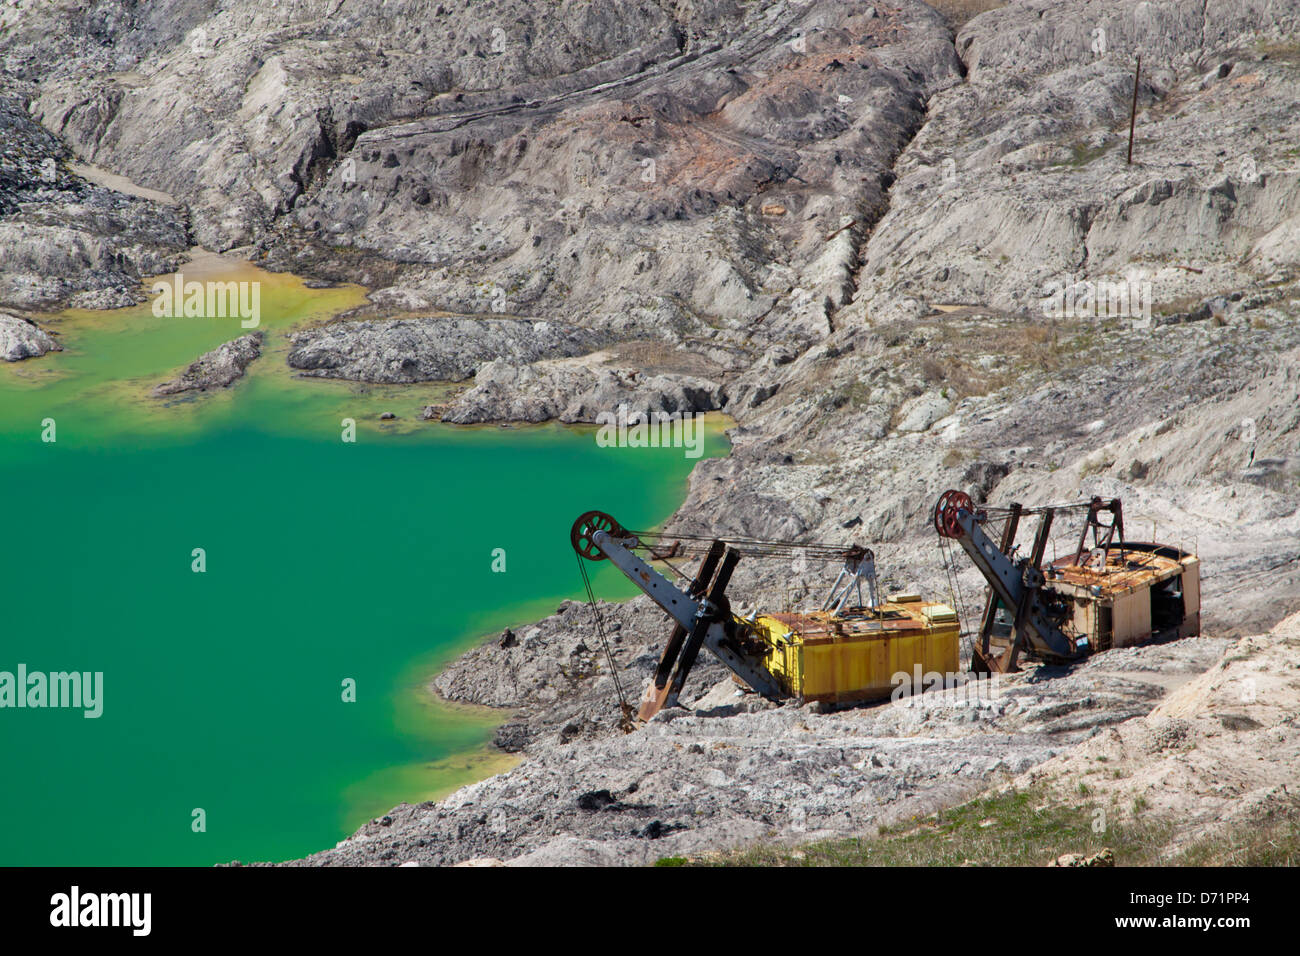 Earth movers beside a groundwater lake in the Chokurovo Coal Mine, an open pit mine in Bulgaria where Lignite is - Stock Image